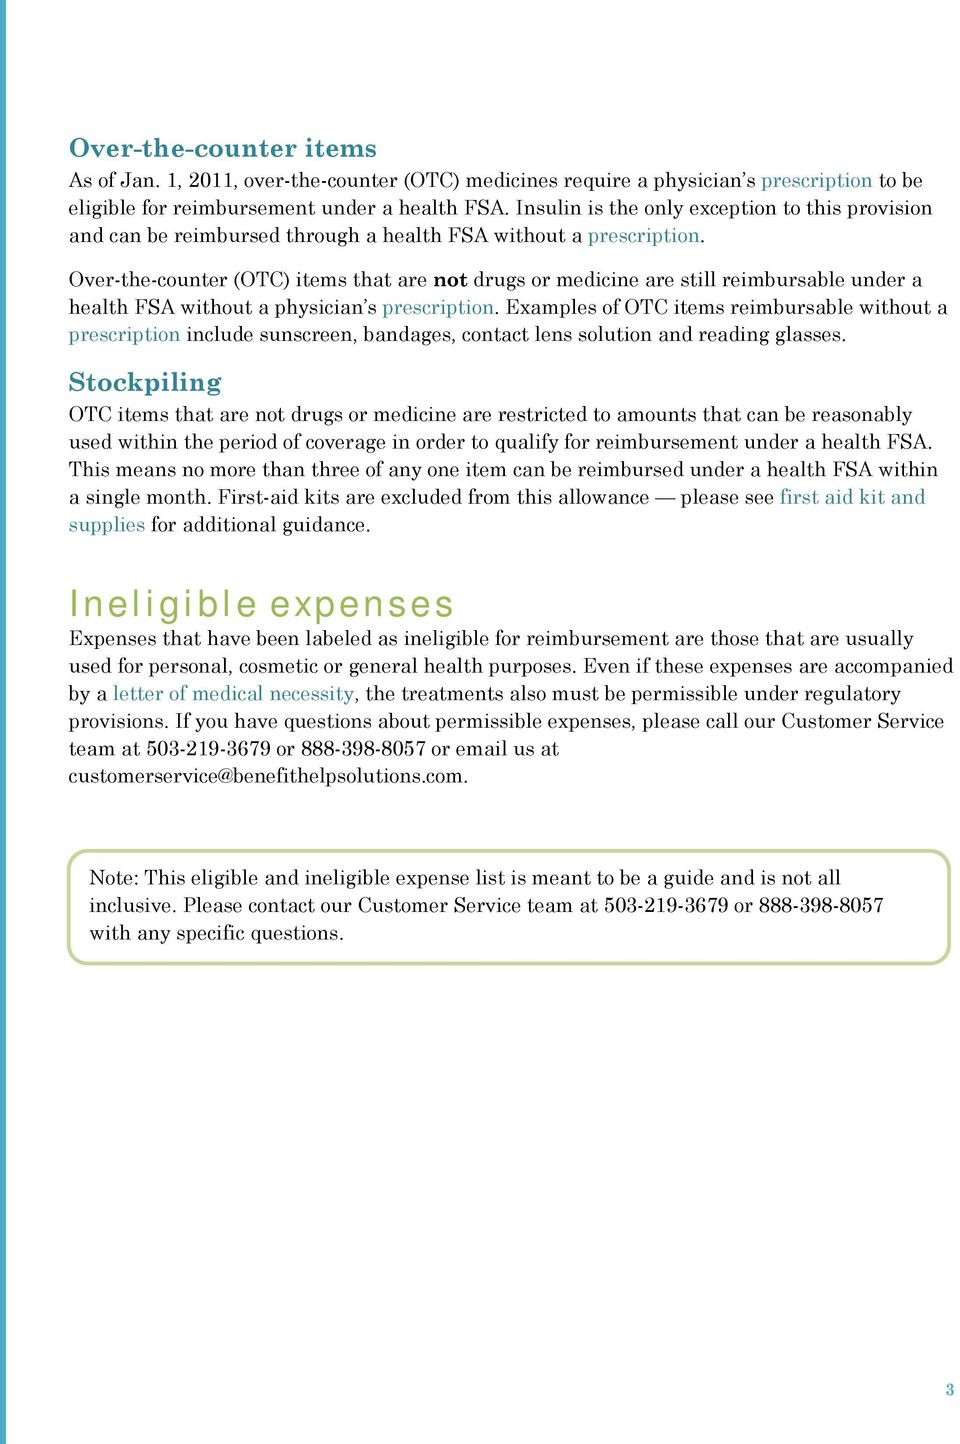 Eligible and ineligible expenses - PDF